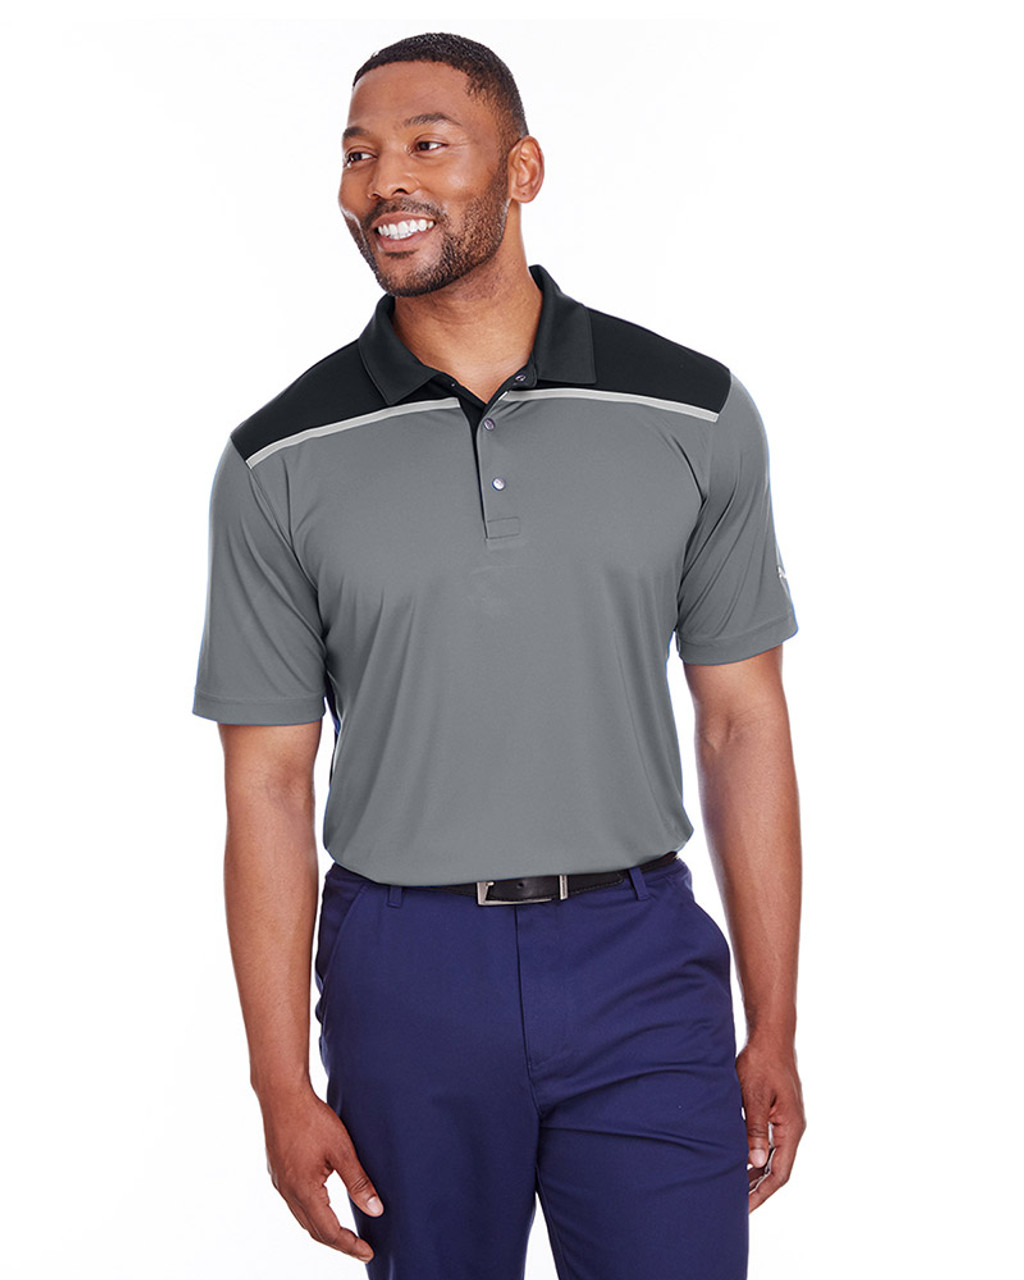 Quiet Shade/Puma Black - 596805 Puma Golf Men's Bonded Colorblock Polo | Blankclothing.ca